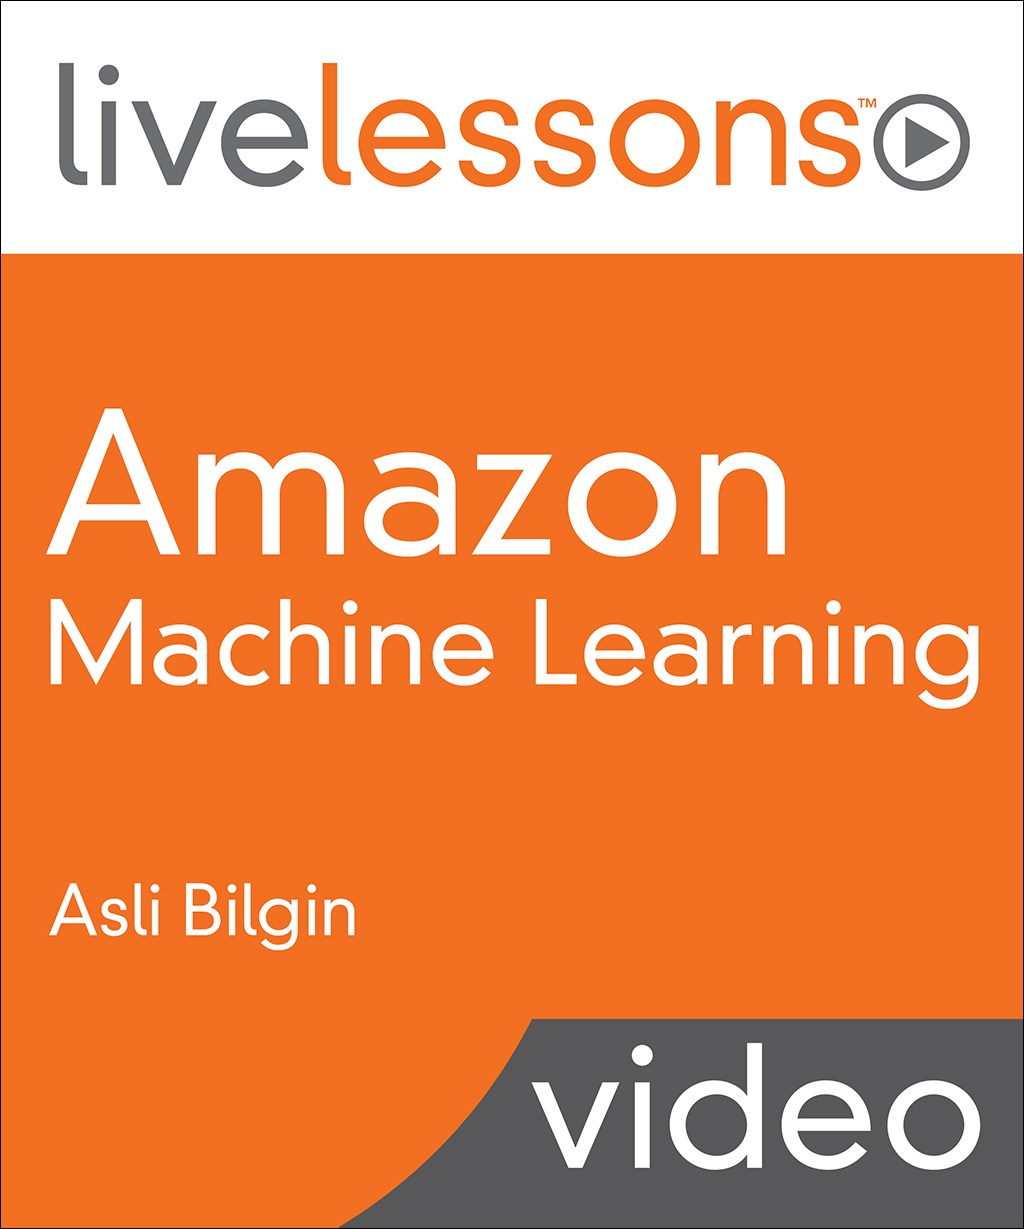 Amazon Machine Learning LiveLessons